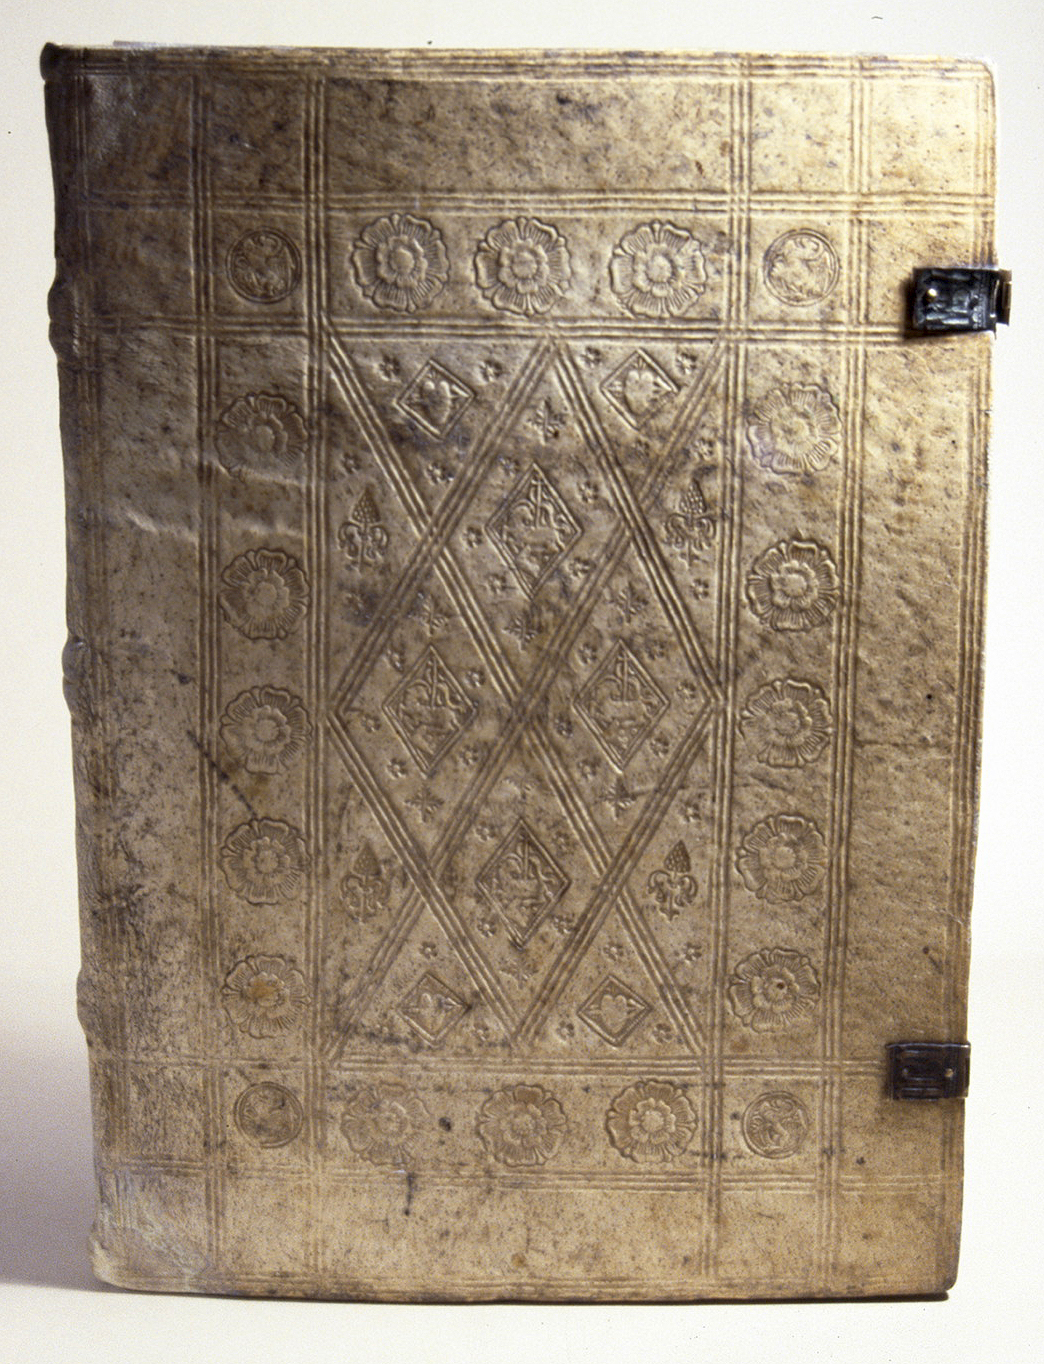 18afd99bfad78 The tooled emblems found on the binding